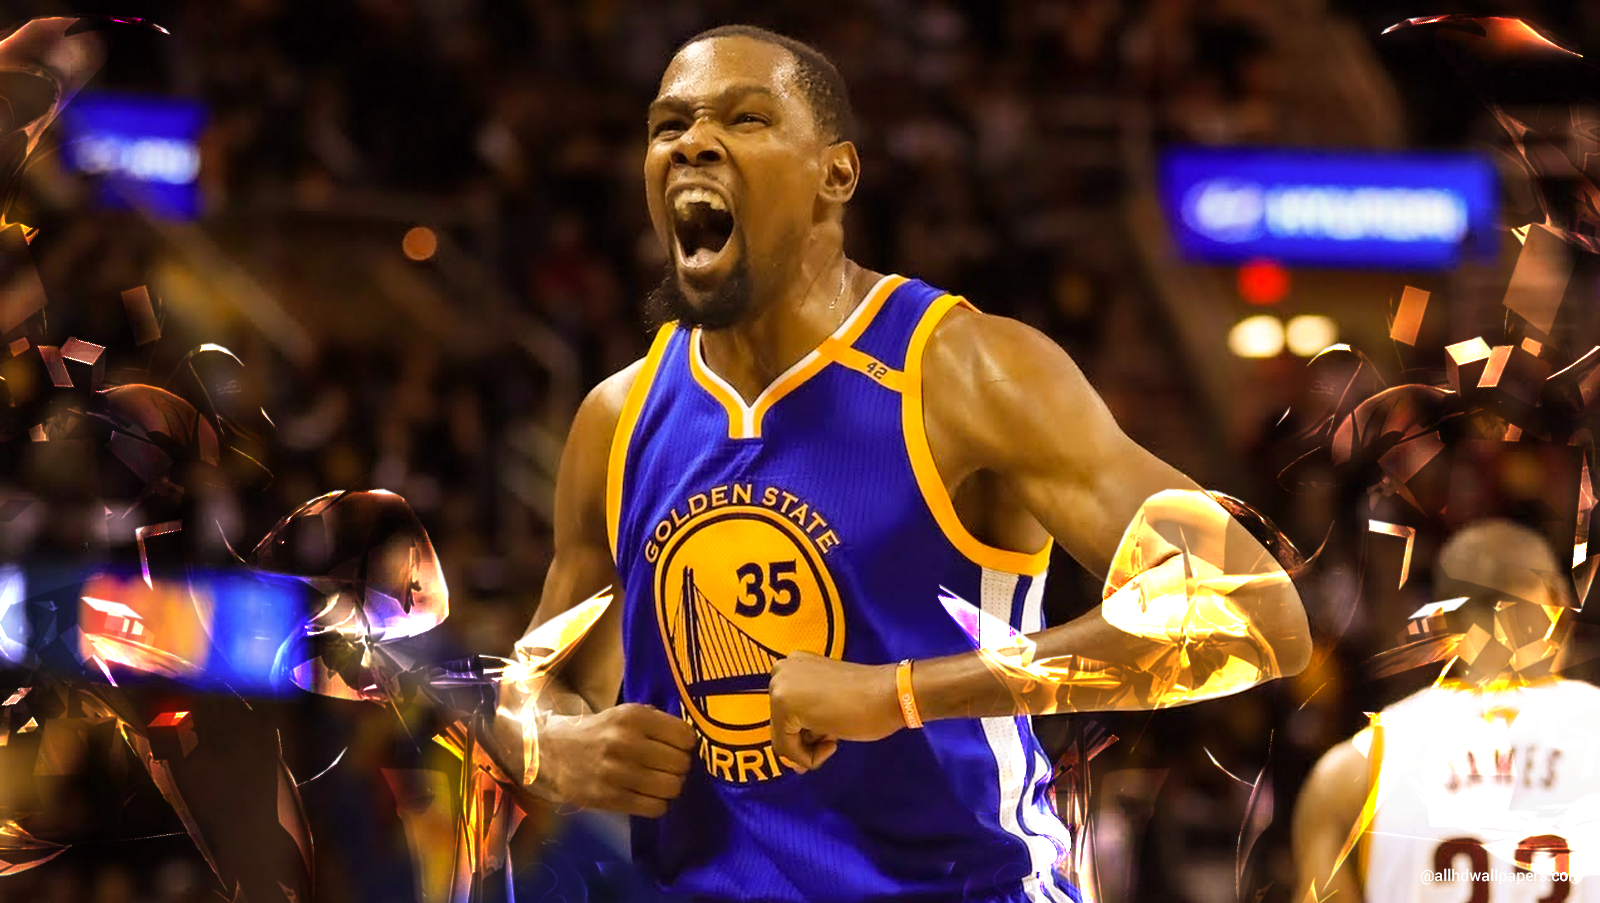 Kevin Durant Basket Ball Player Wallpaper ...